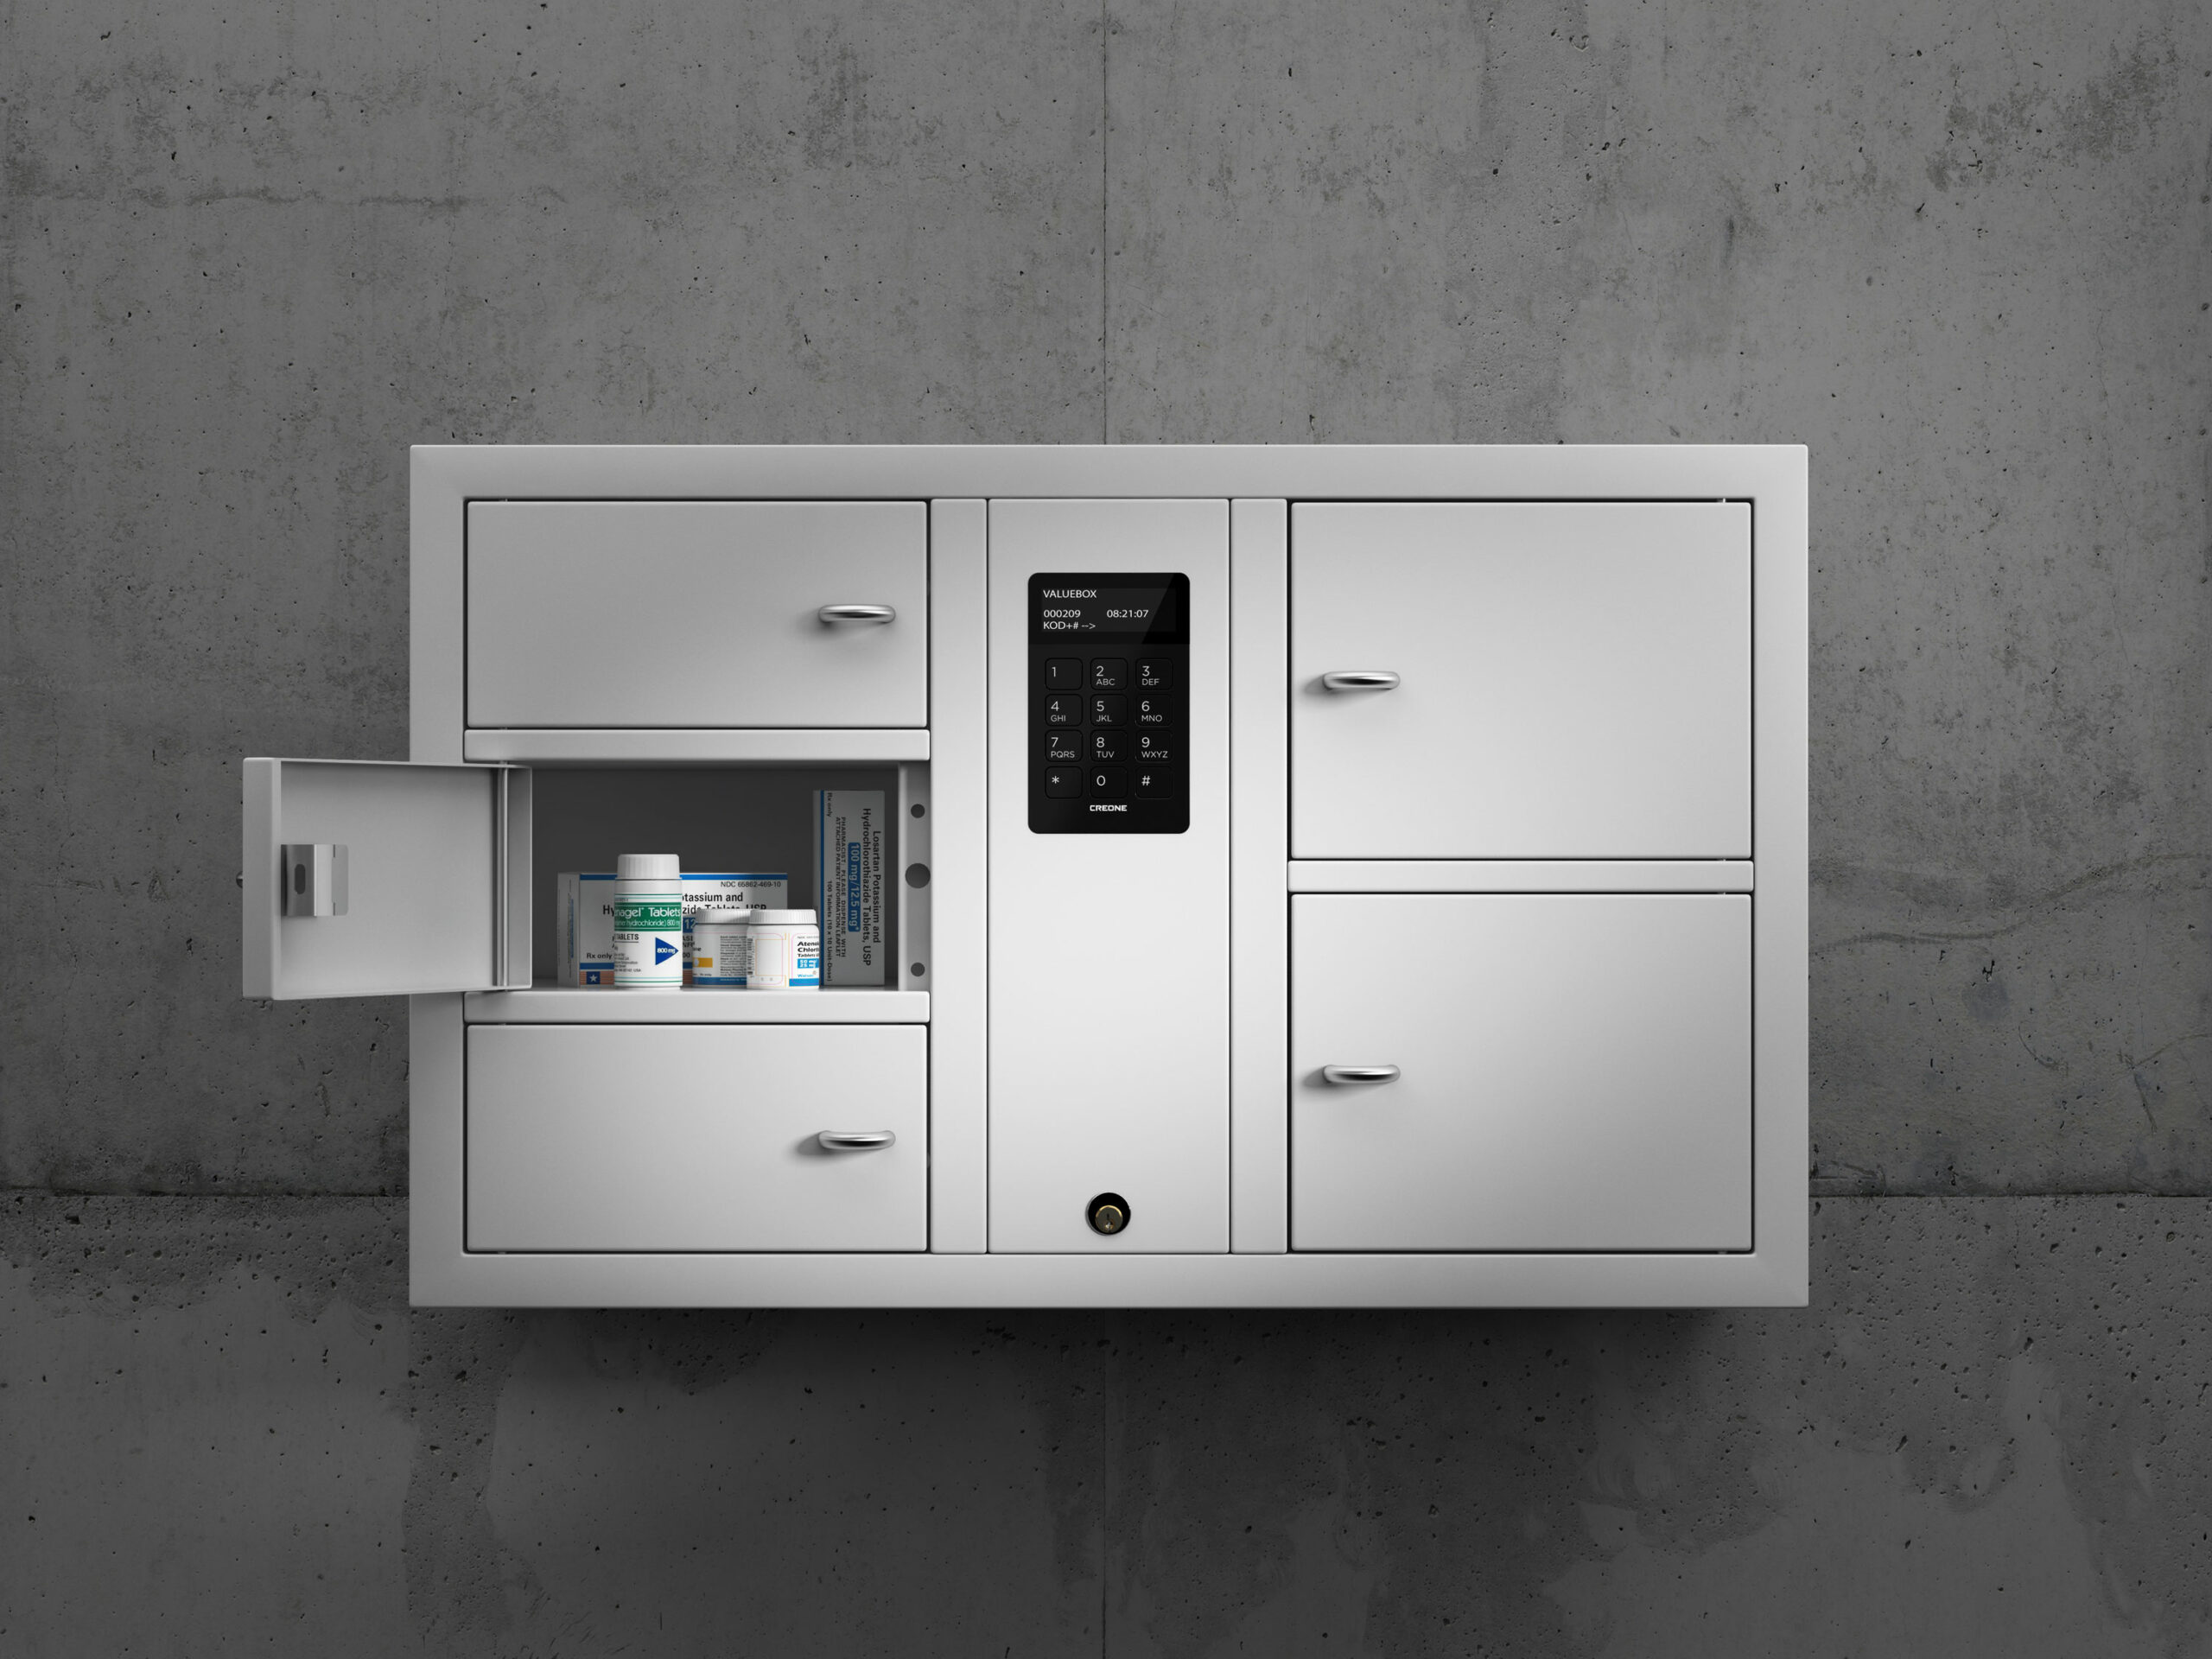 Valuables cabinet 7005 S in the System series. Mounted on the wall with open compartments containing medicines for collection.